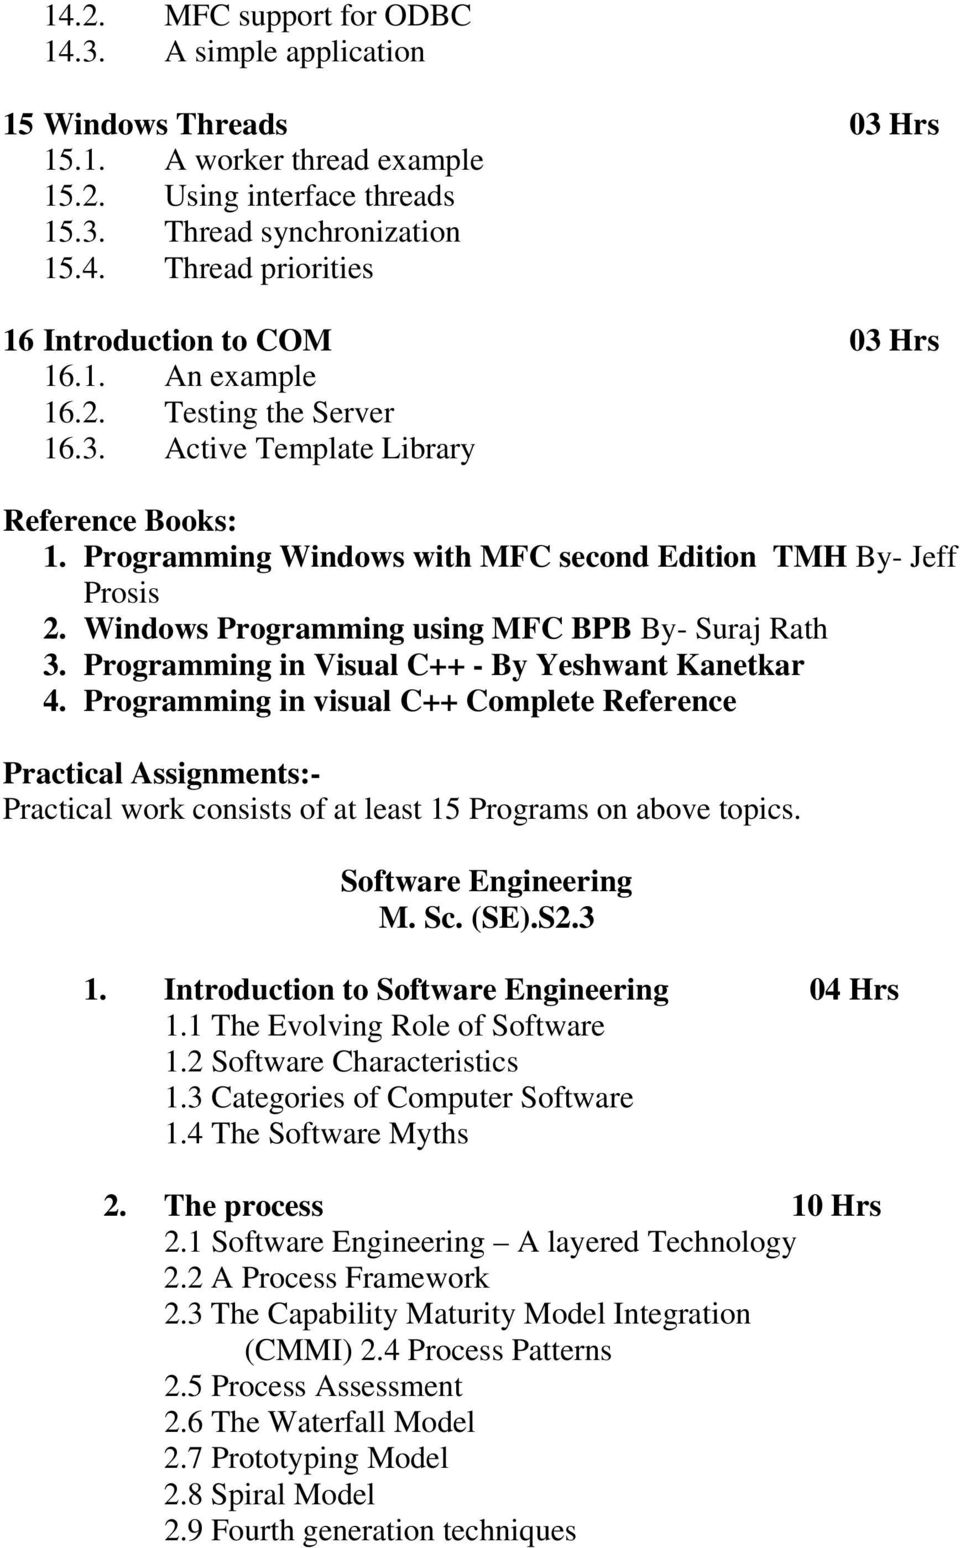 Syllabus of M Sc (SE)/Master of Science in (Software